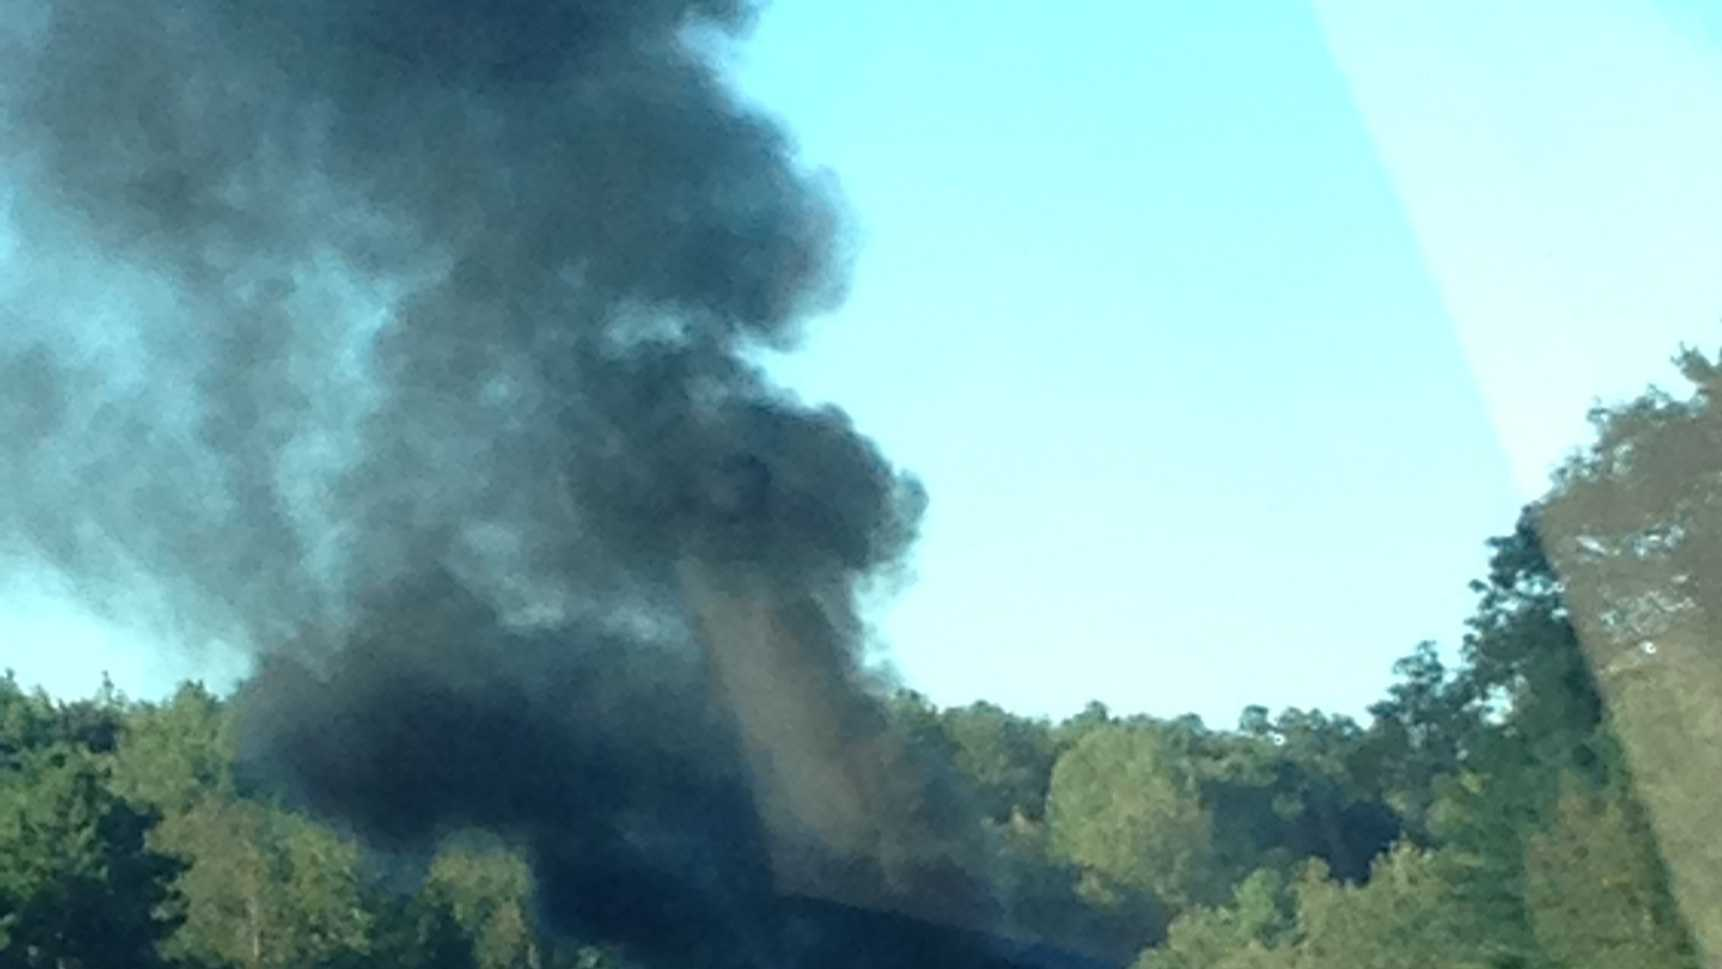 A car fire on I-89 in Georgia, Vt., holds up traffic on the evening commute on Tuesday, Sept. 17.